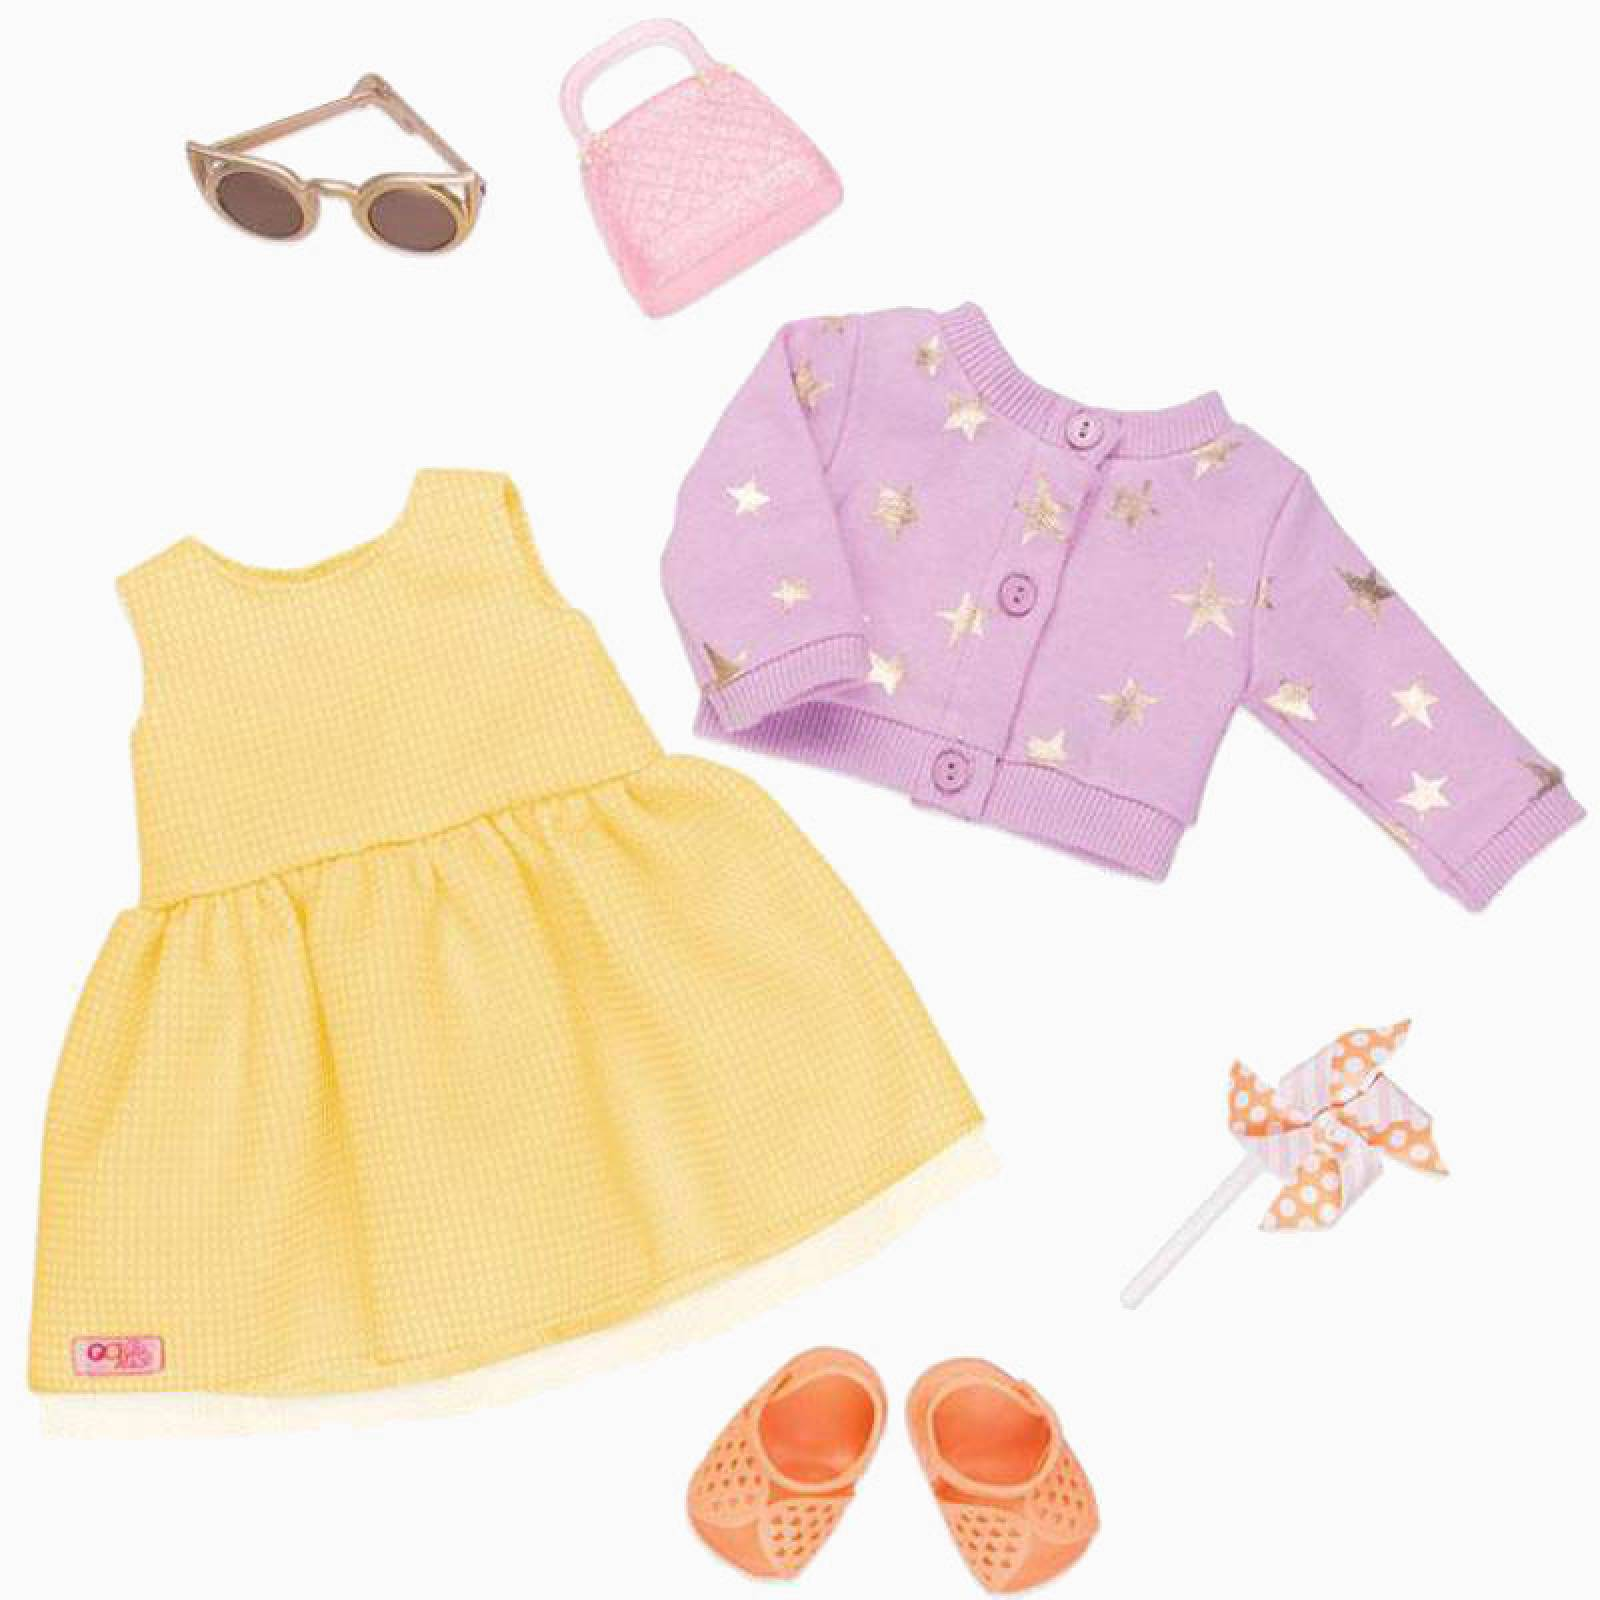 Summer Dress - Our Generation Doll Clothes Set 3+